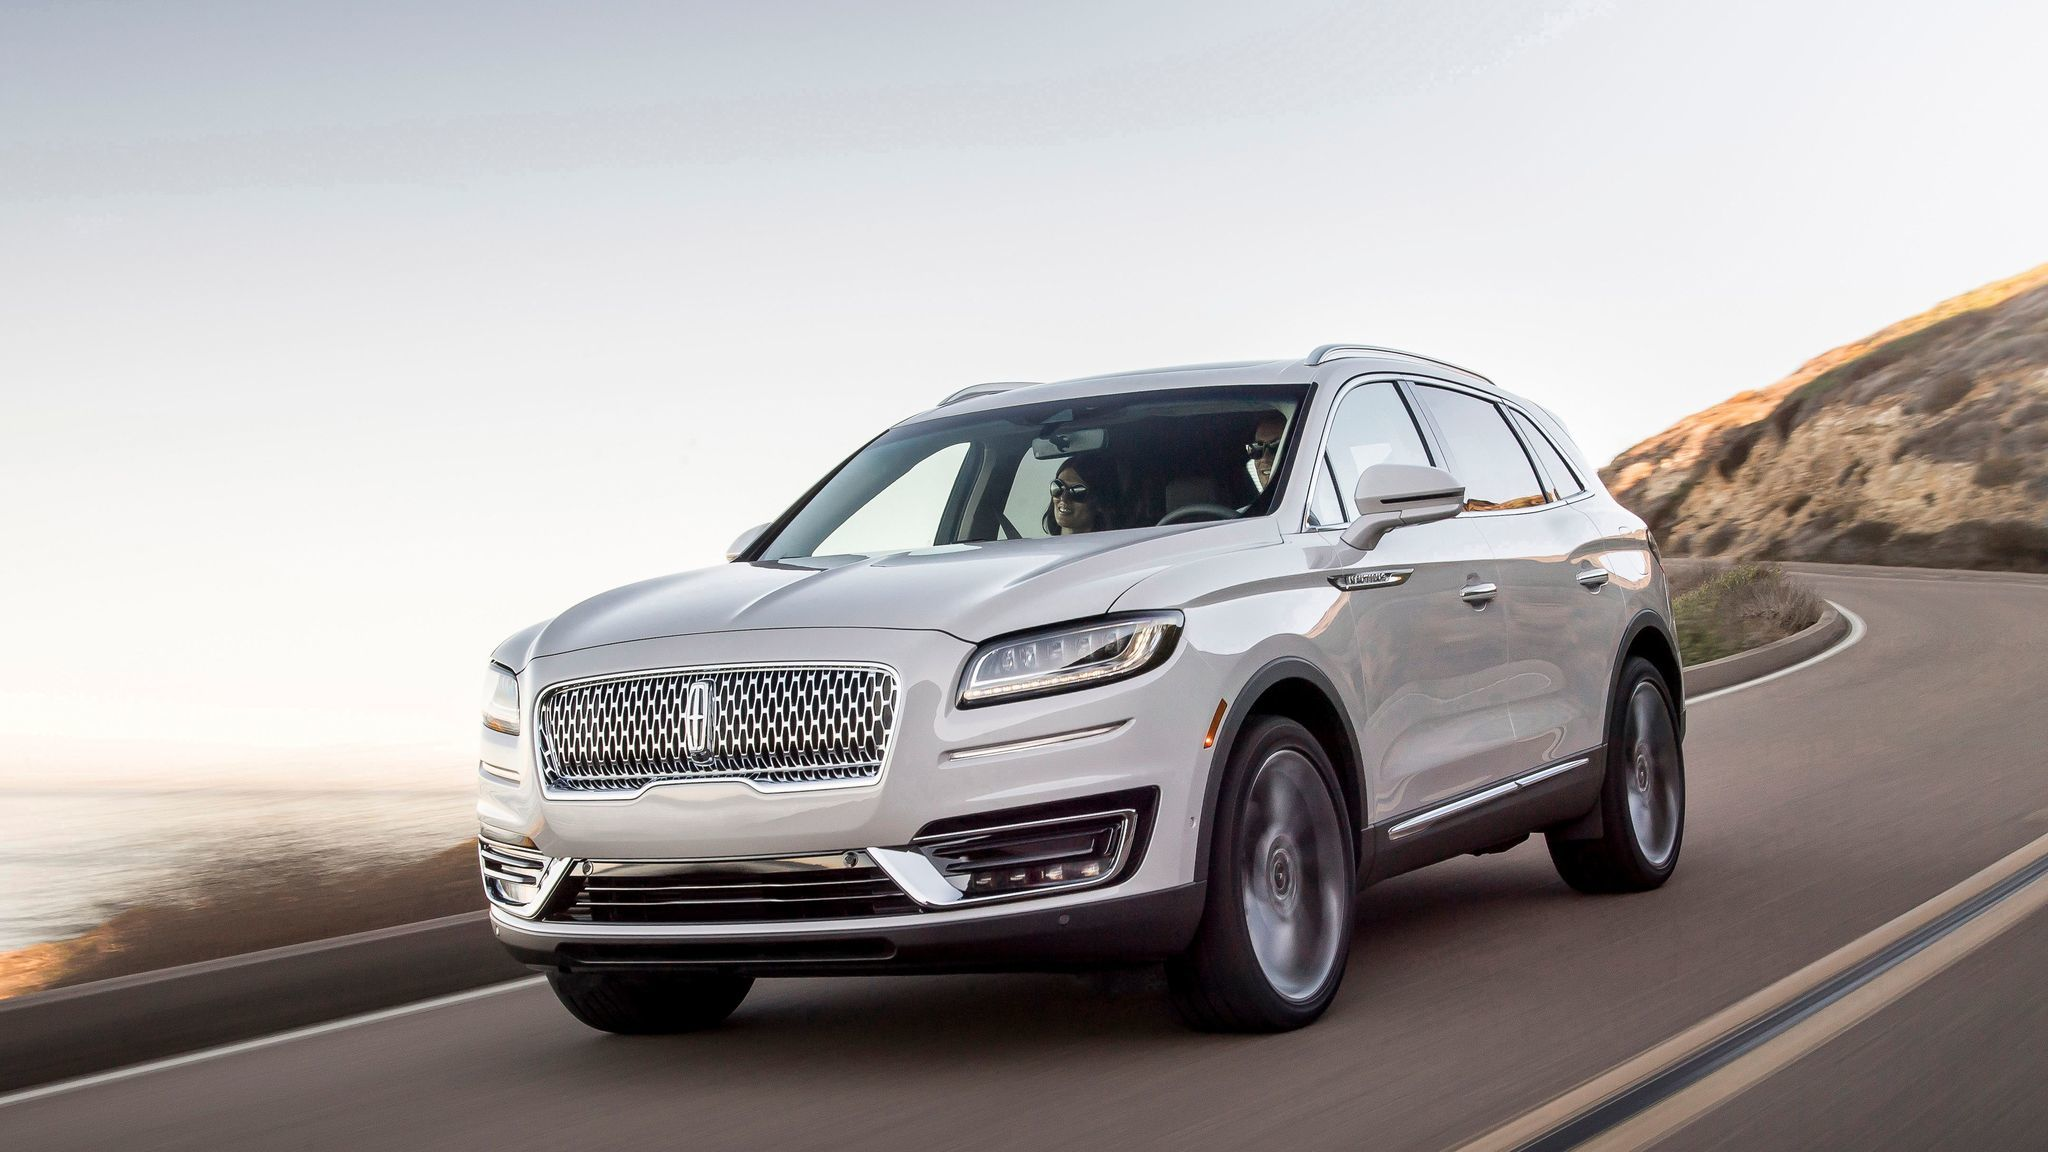 Lincoln returns to full model names, turning 'MKX' into 'Nautilus'